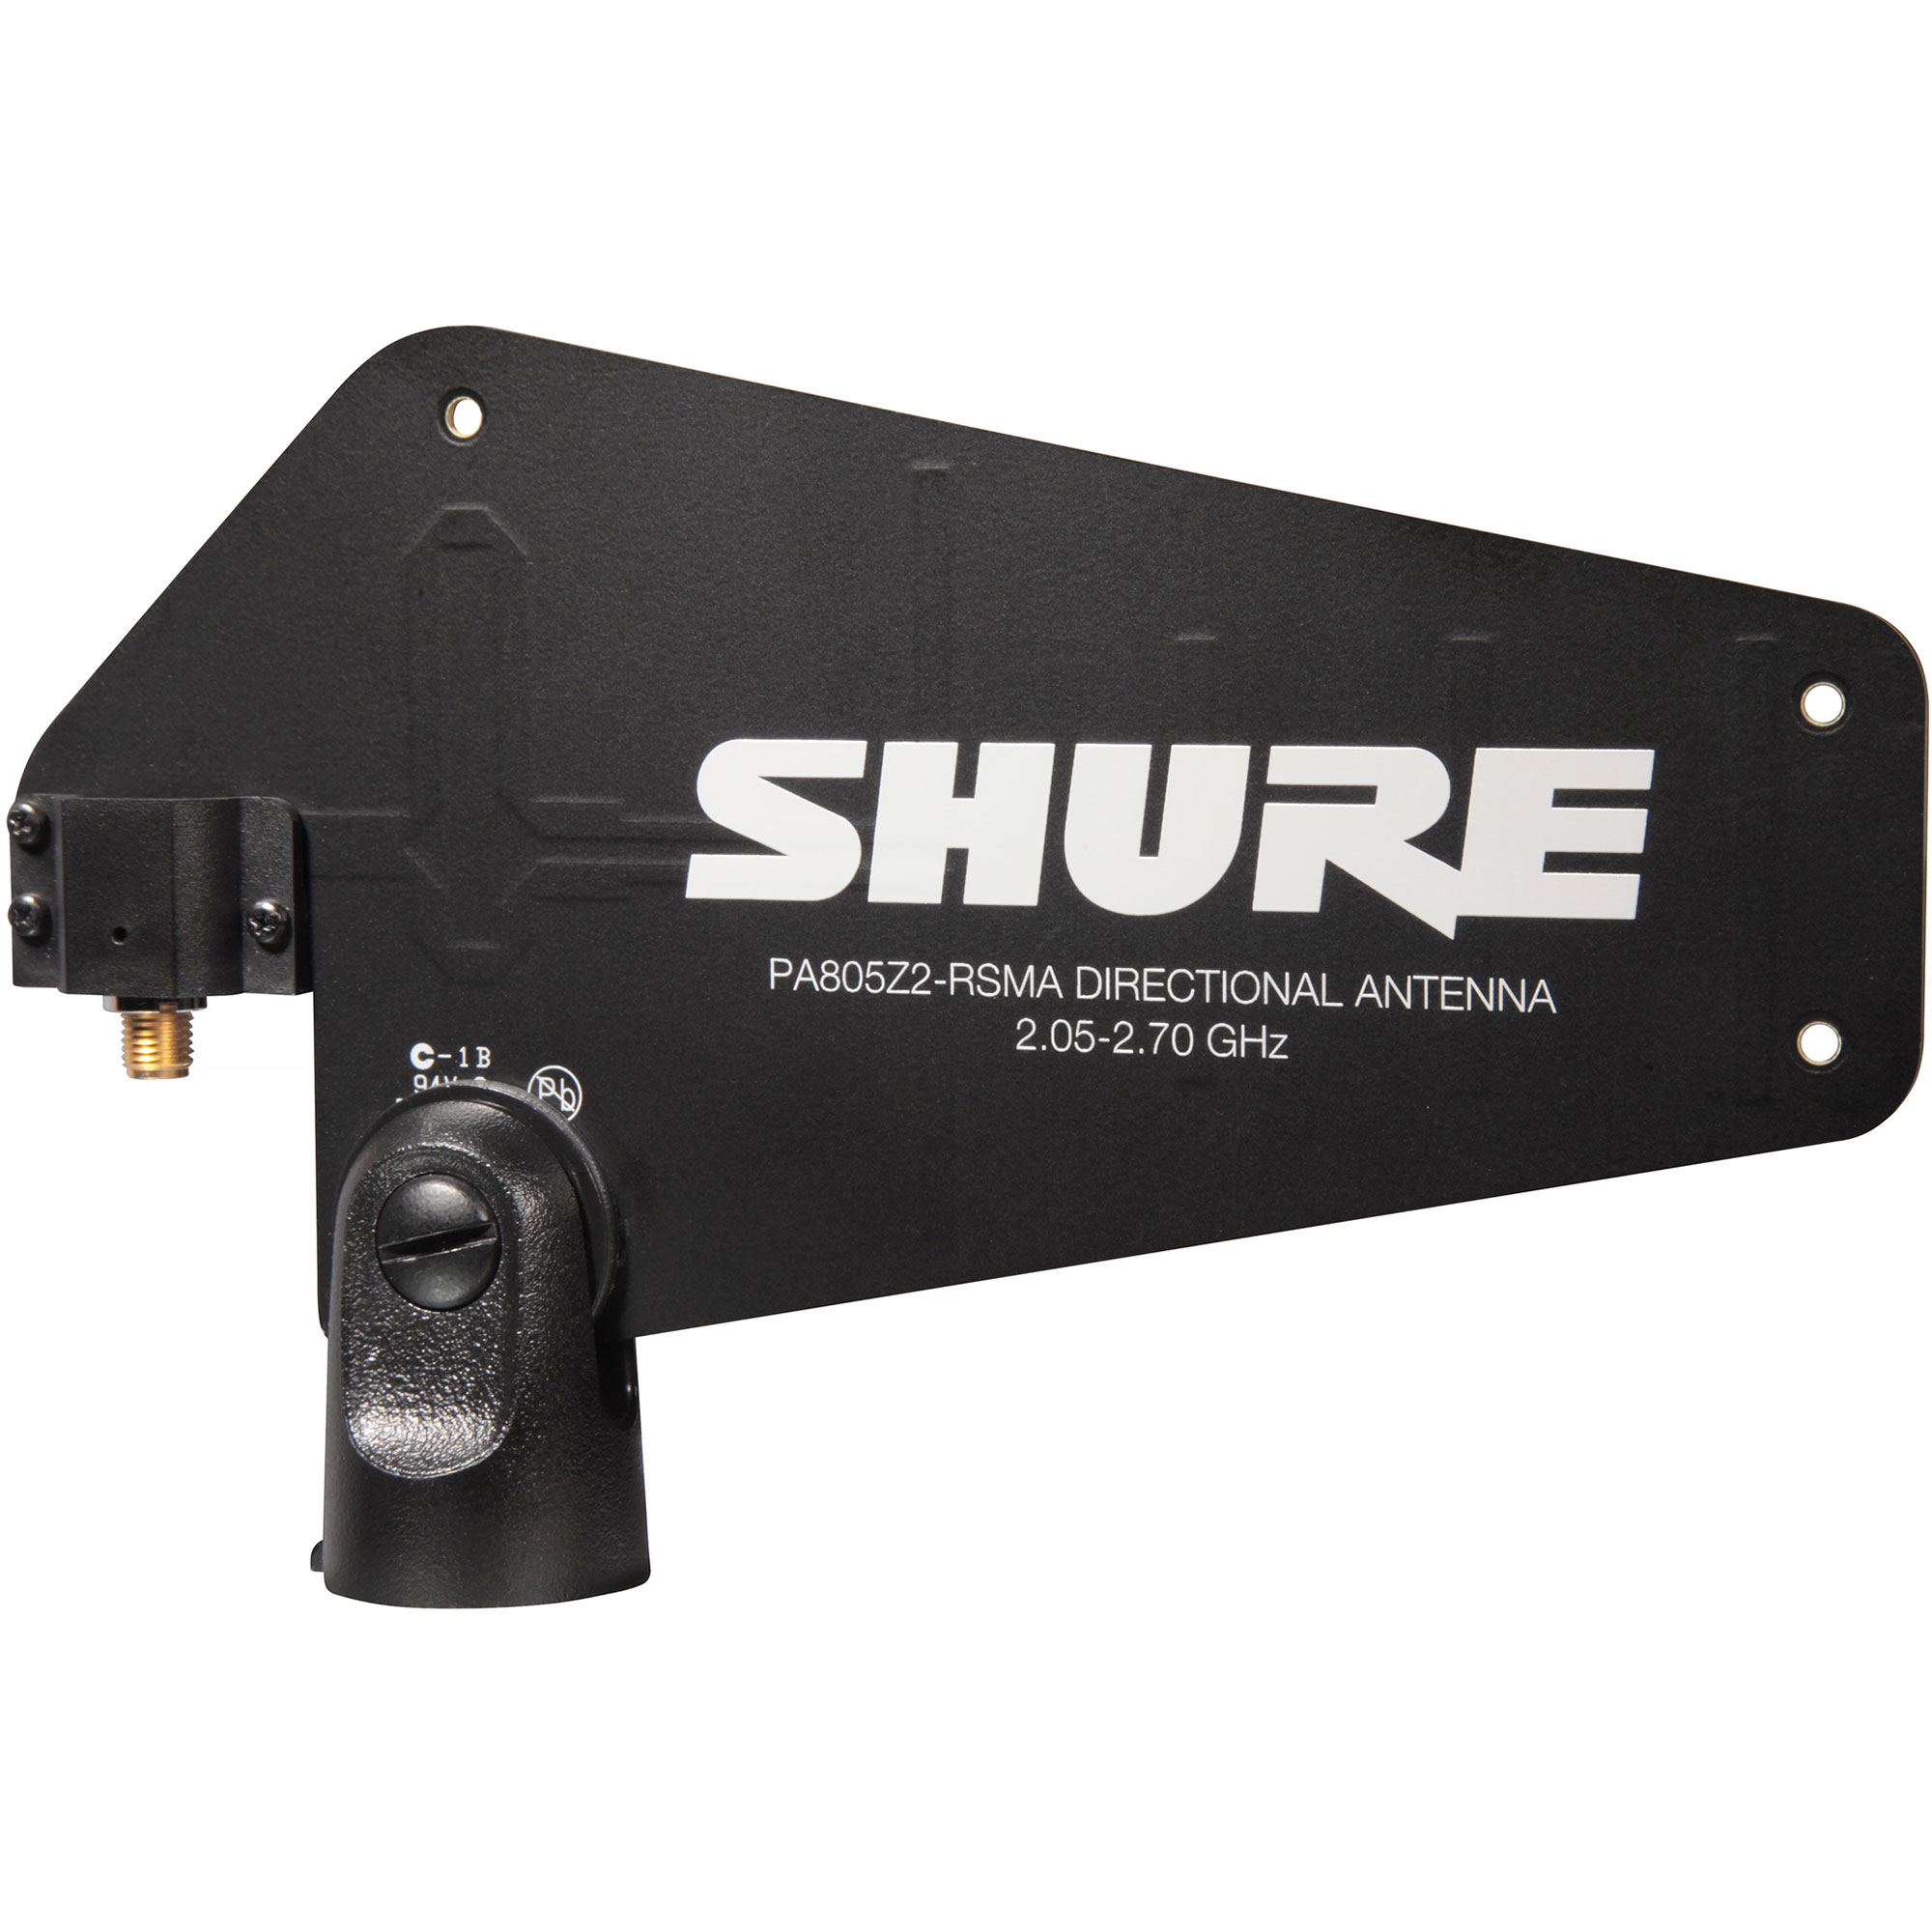 Shure Passive Directional Antenna for GLX-D Advanced Digital Wireless Systems